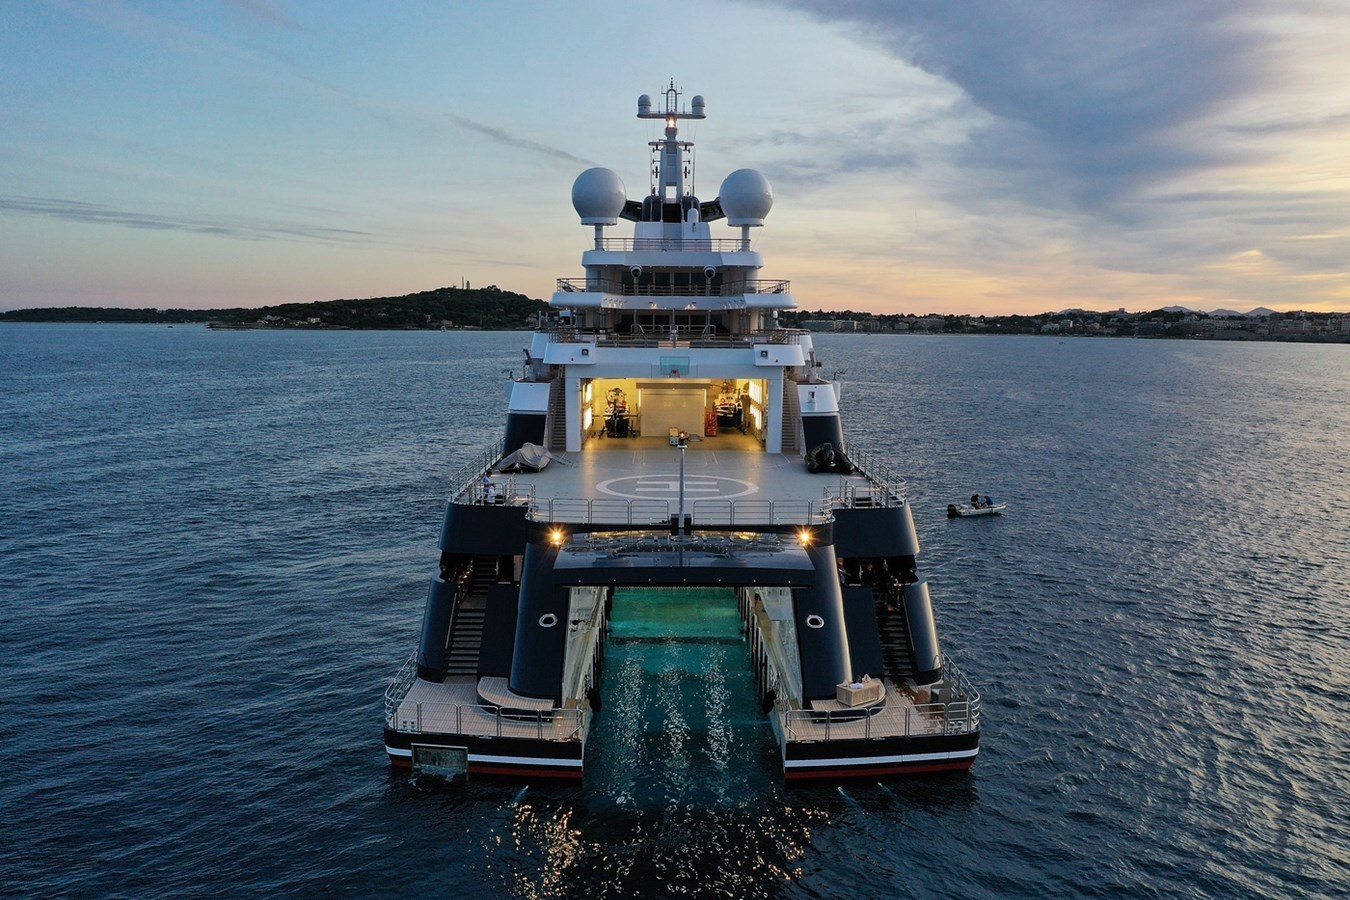 OCTOPUS_00006307_vb1563448 2003 LURSSEN Twin Screw Displacement Yacht Motor Yacht 2817165